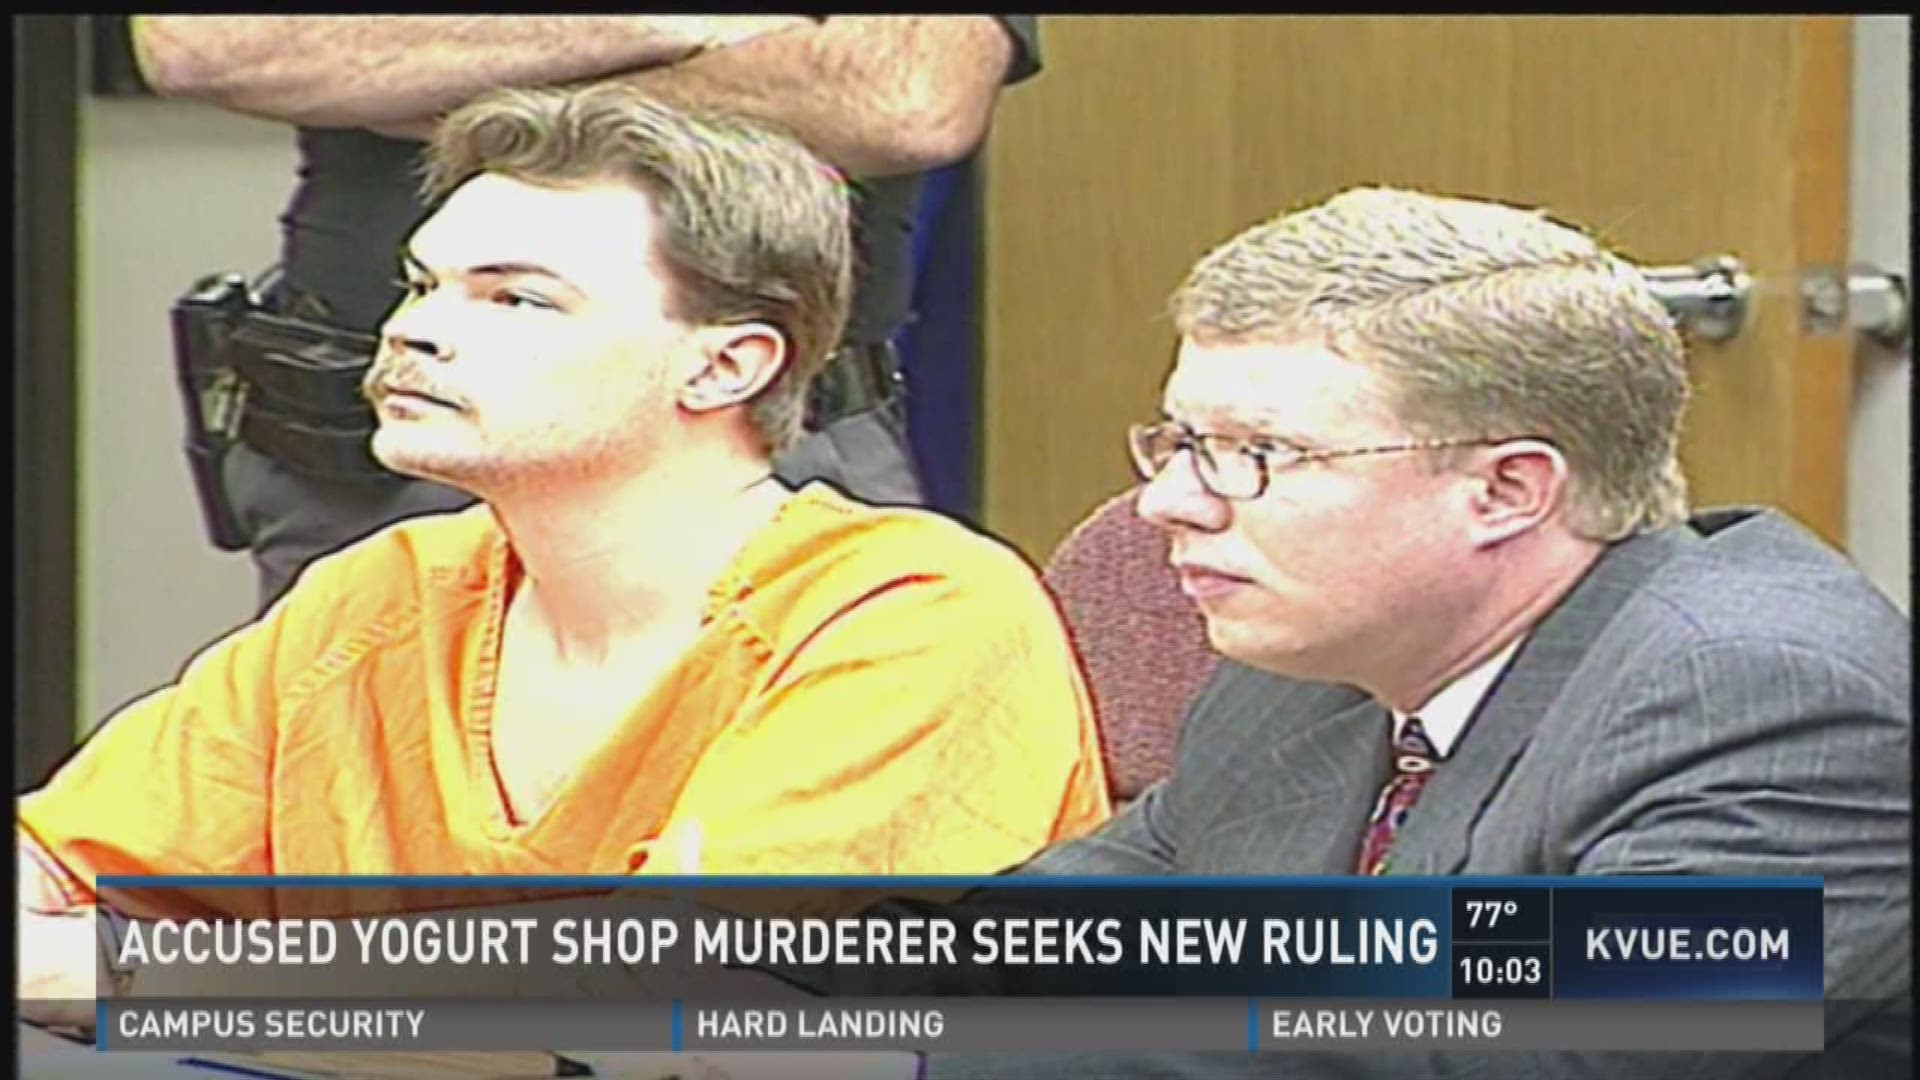 Man convicted in Yogurt Shop murders wants to clear his name | ktvb.com